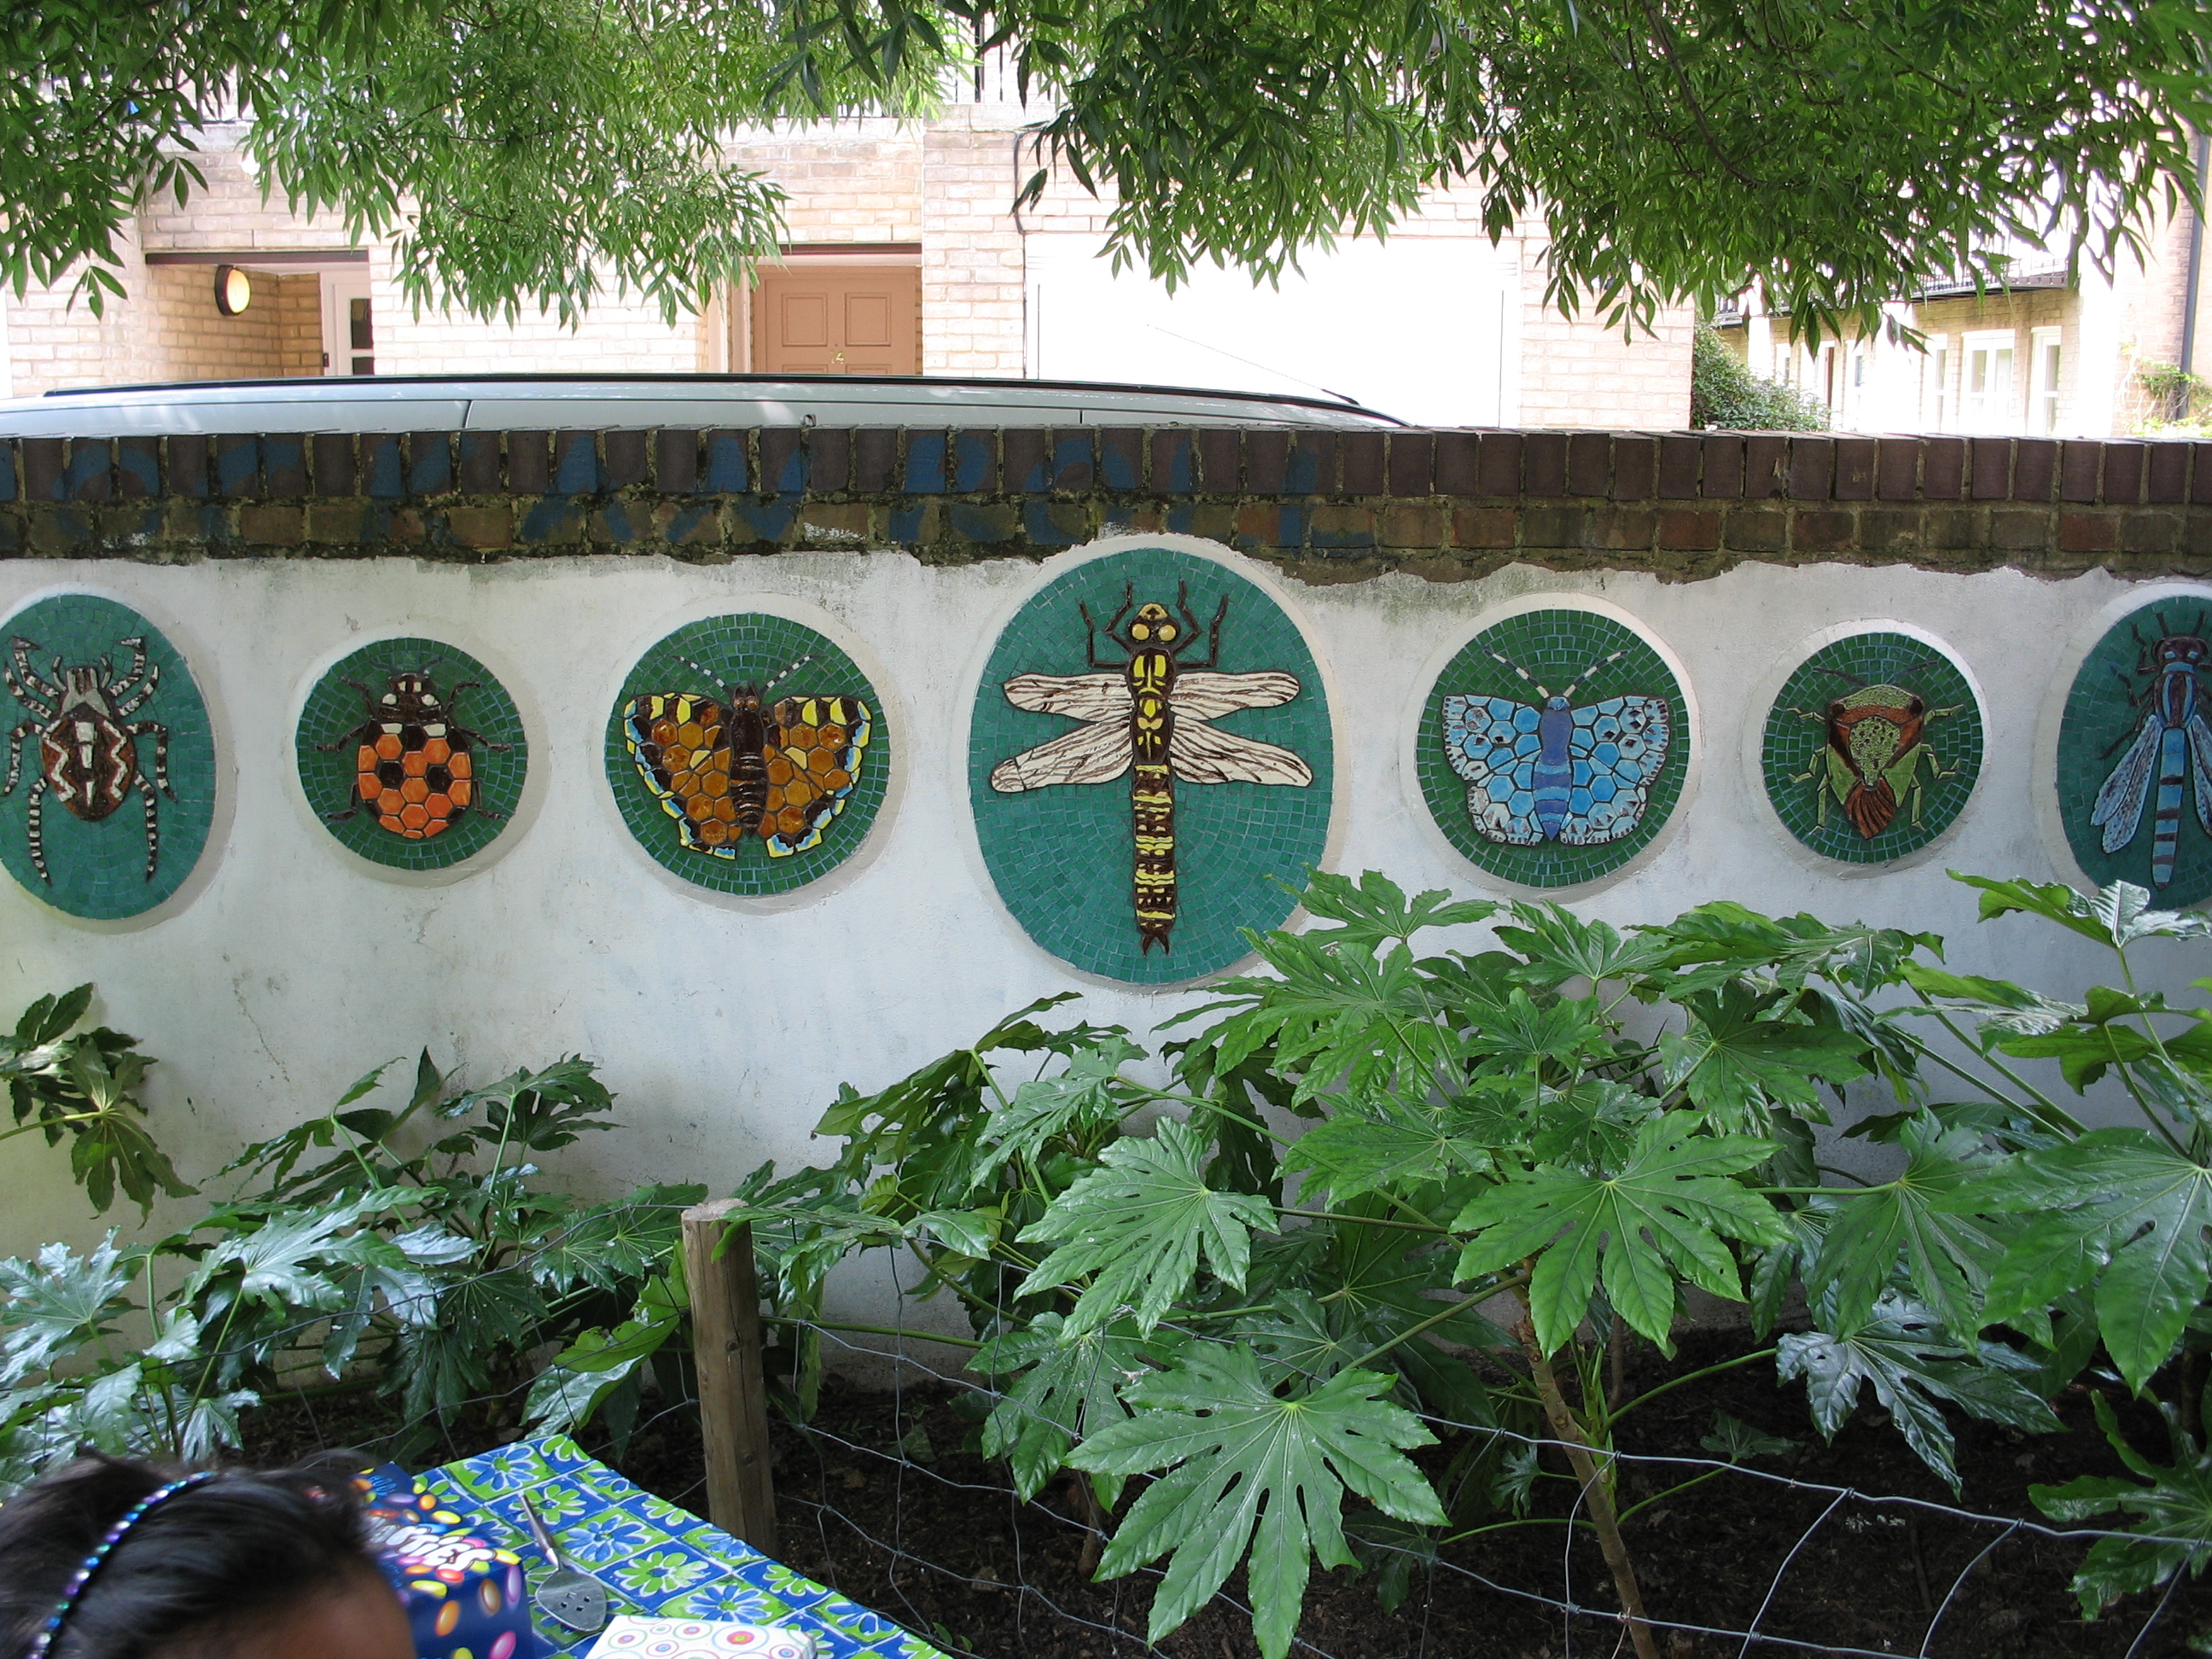 'Animal Park' Mosaic - Insects